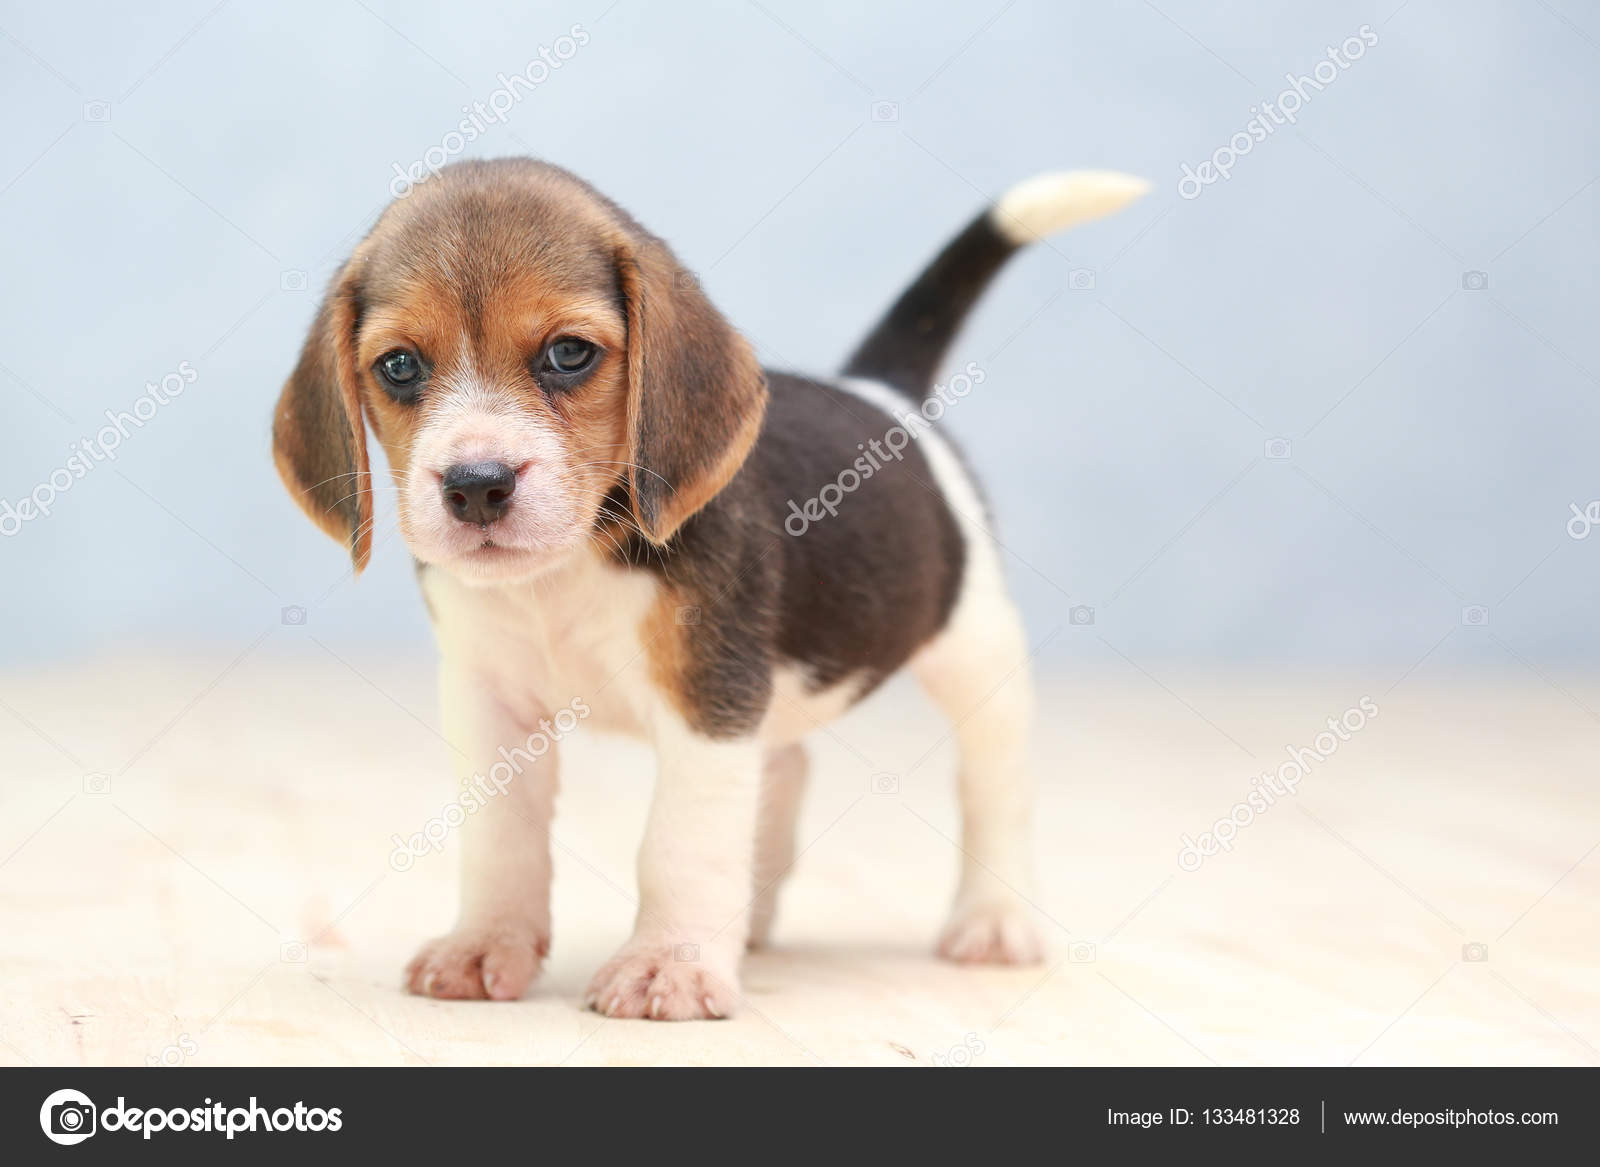 Wonderful Small Beagle Adorable Dog - depositphotos_133481328-stock-photo-small-cute-beagle-puppy-dog  Photograph_586164  .jpg